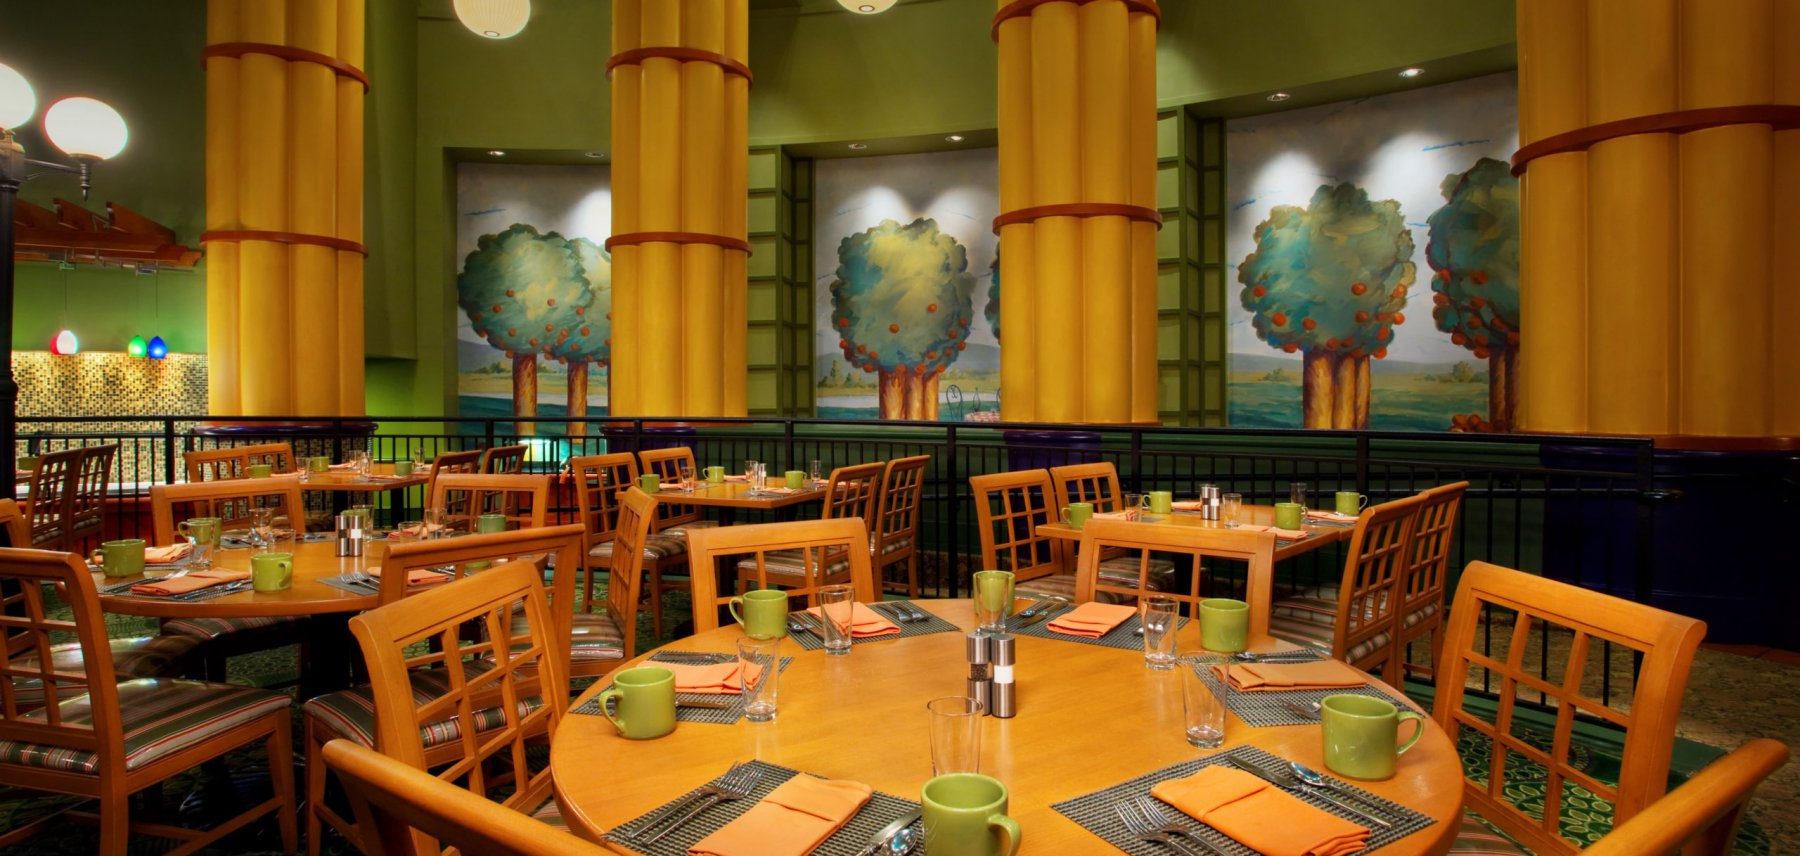 An interior view of the seating area in the Garden Grove restaurant at the Walt Disney World Swan Resort